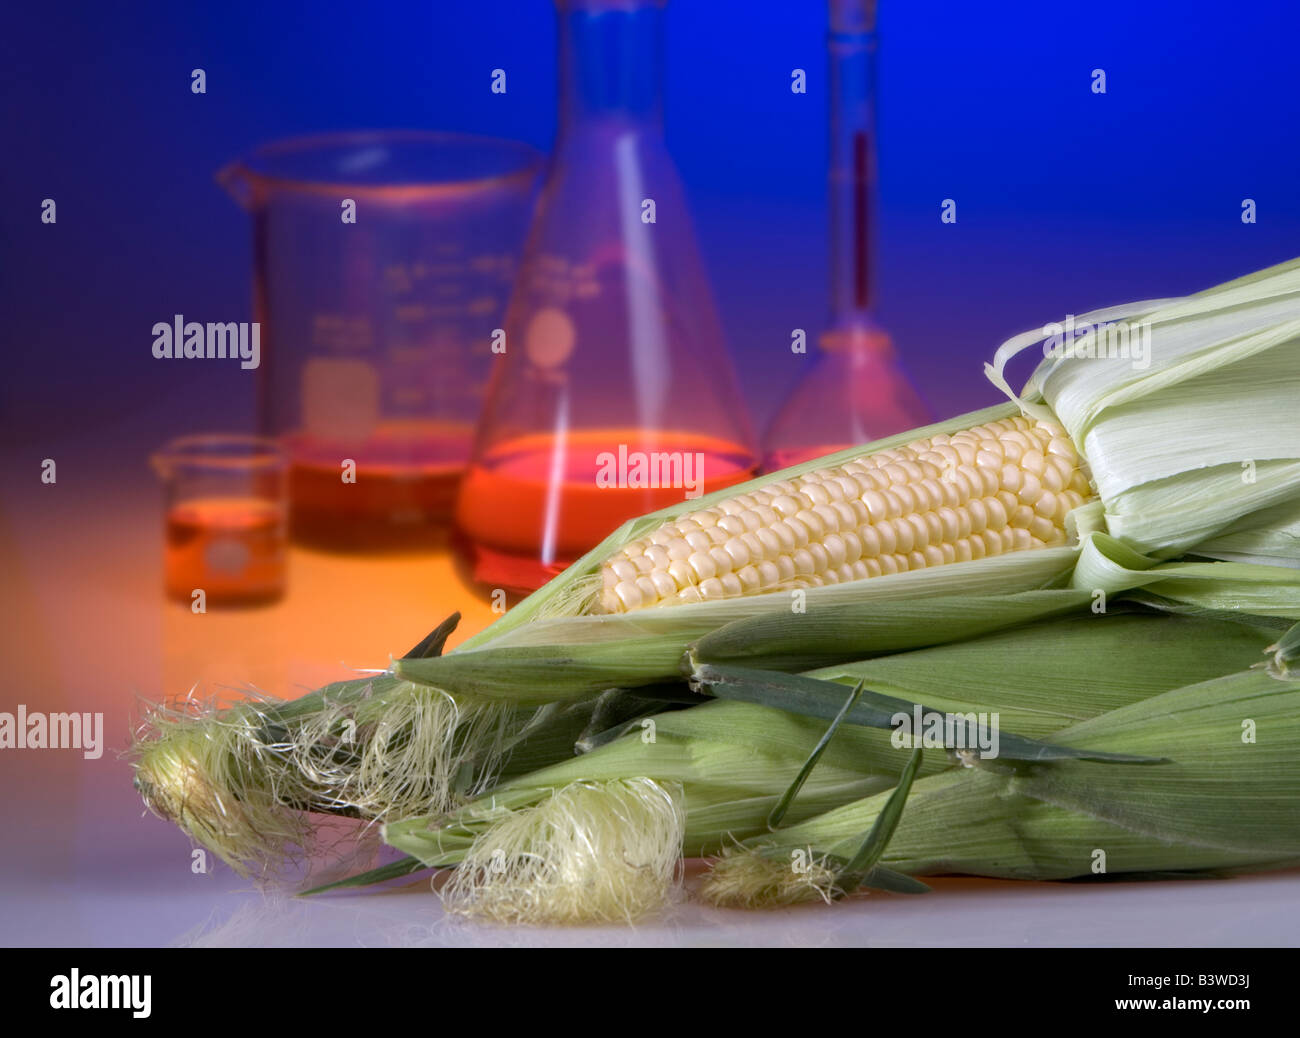 Concept shot of genetically modified corn showing beakers and flasks. Genetically modified foods are resistant to - Stock Image